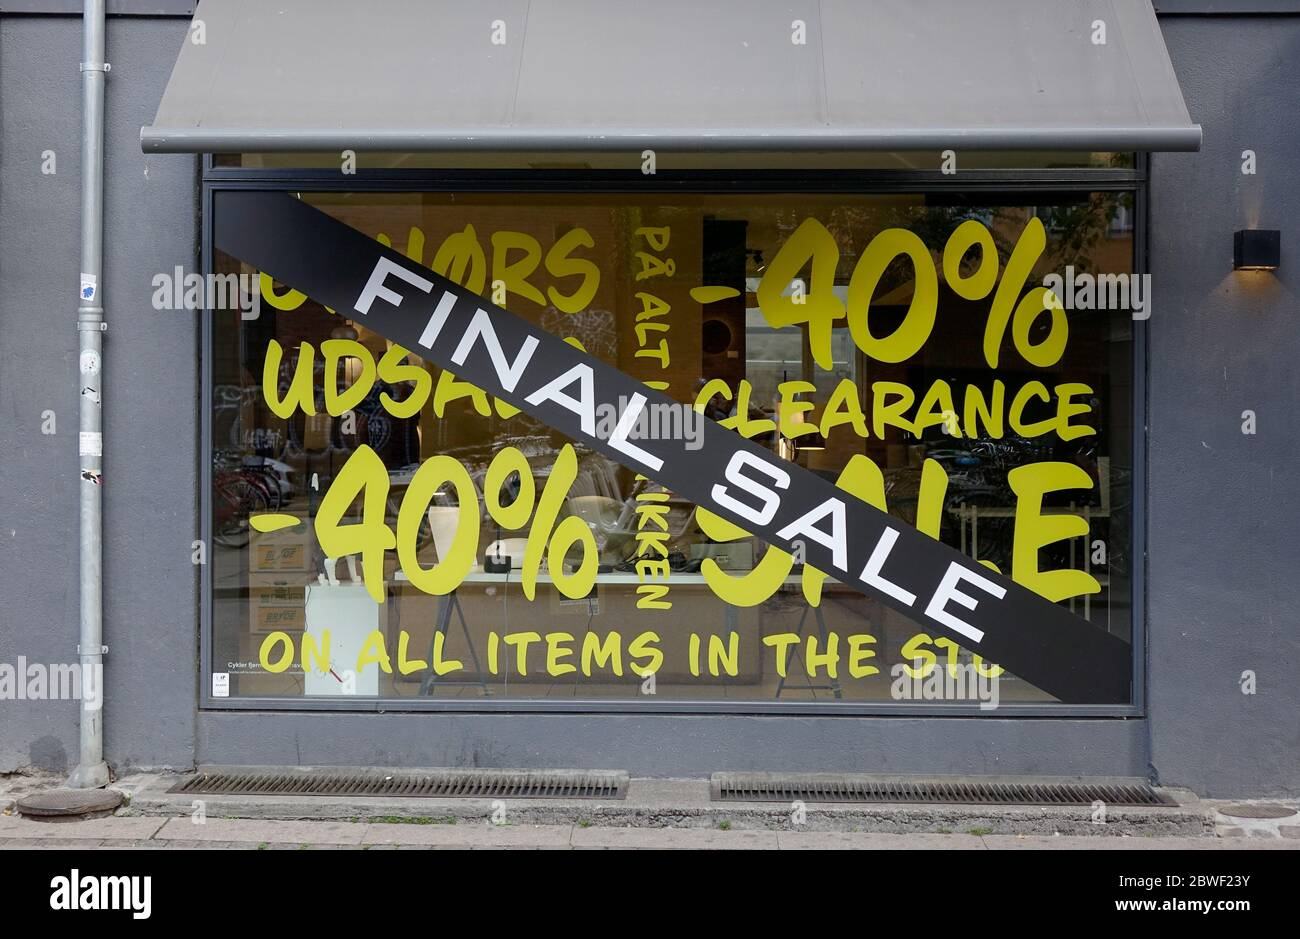 Copenhagen Furniture Store Design Objects Has A Final Clearance Sale Stock Photo Alamy